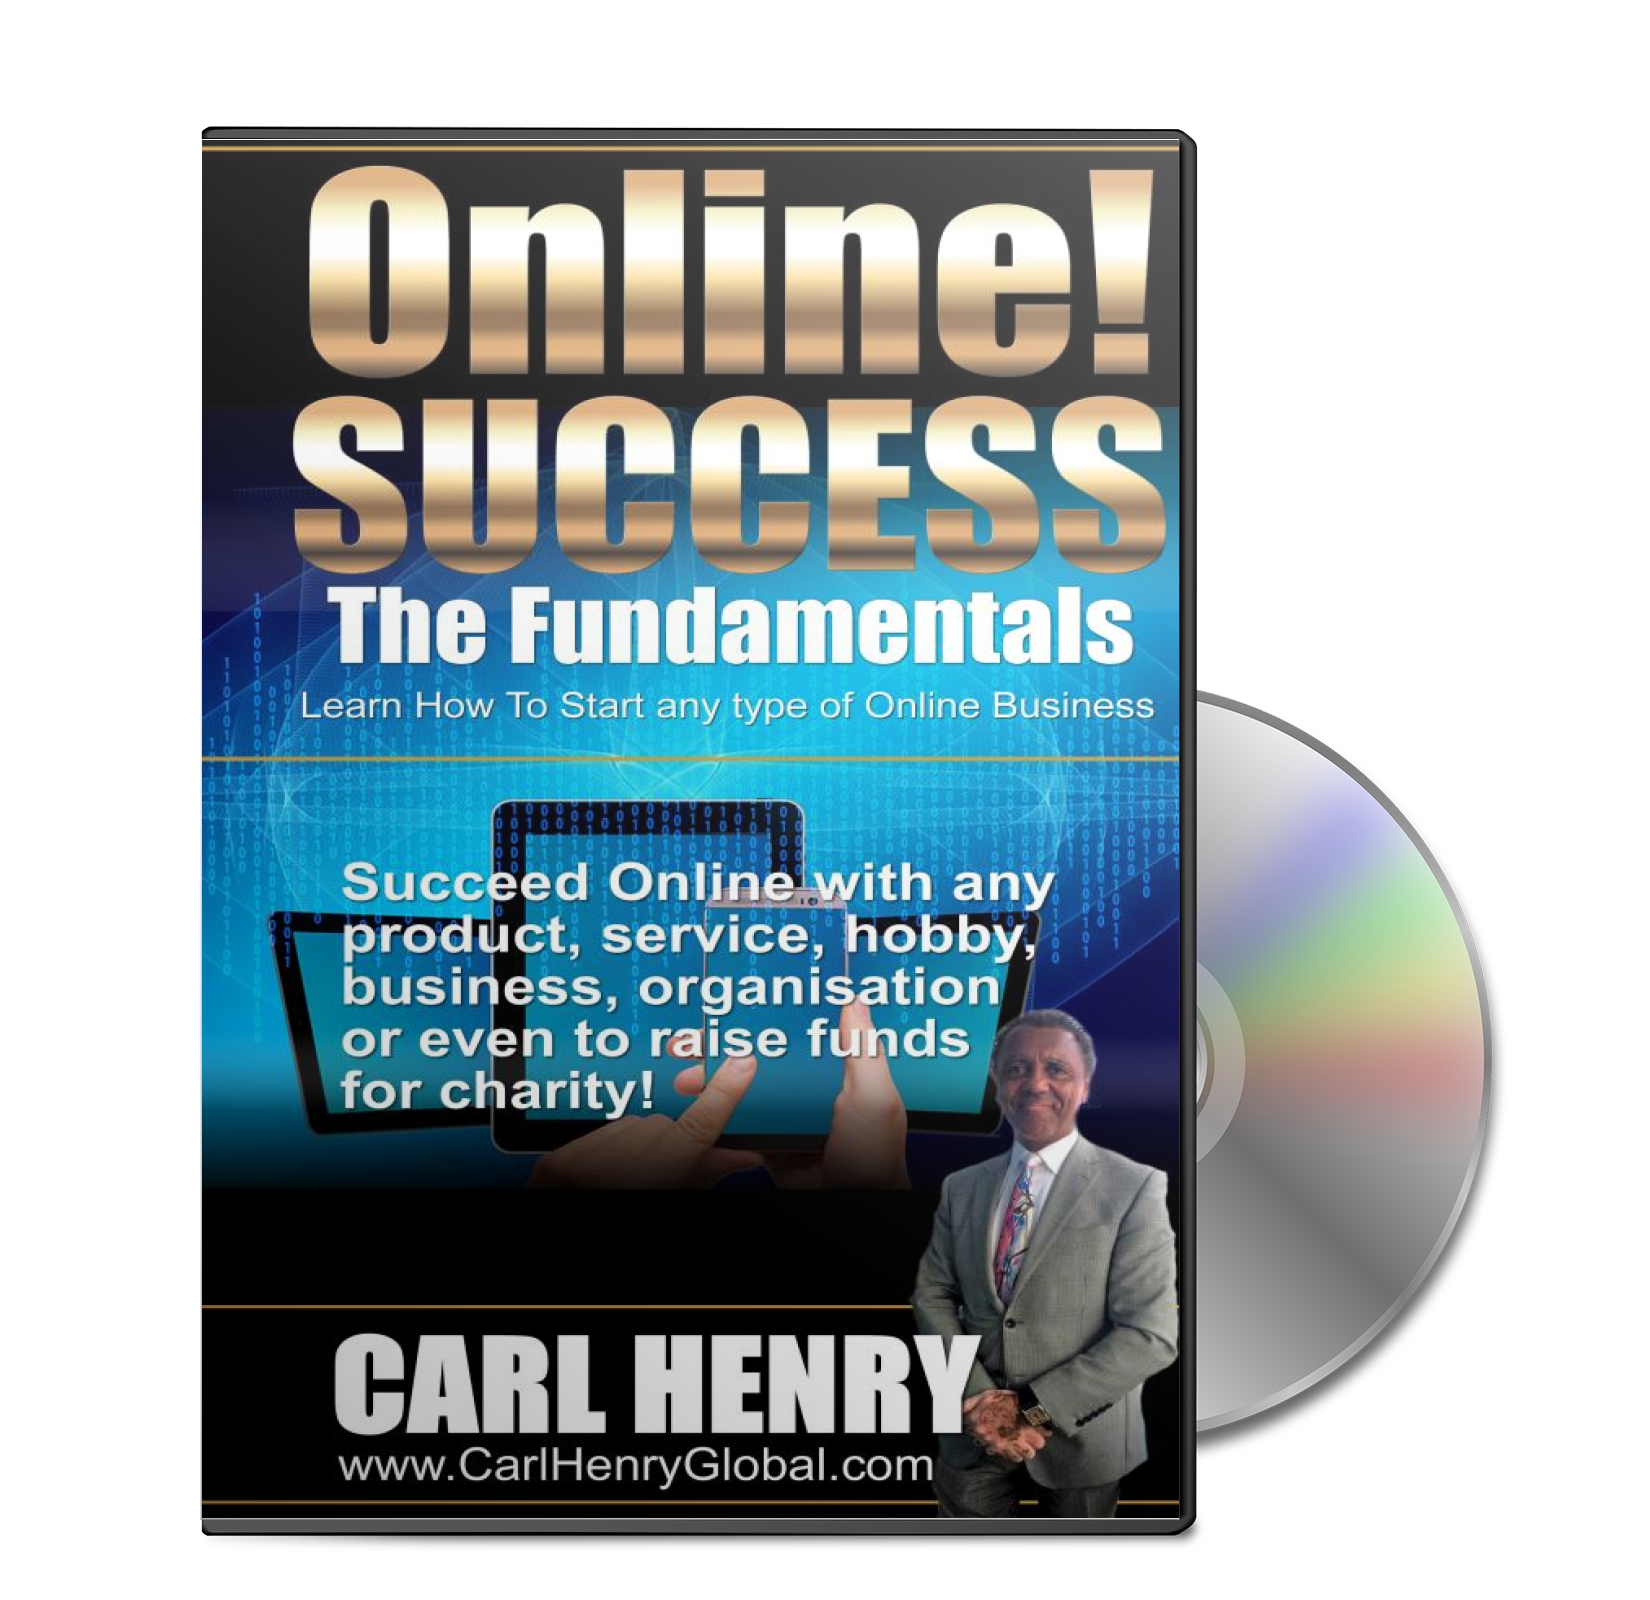 Carl Henry ONLINE! SUCCESS - DVD Box & Disc SIZE: 1650px x 1600px TYPE: PNG